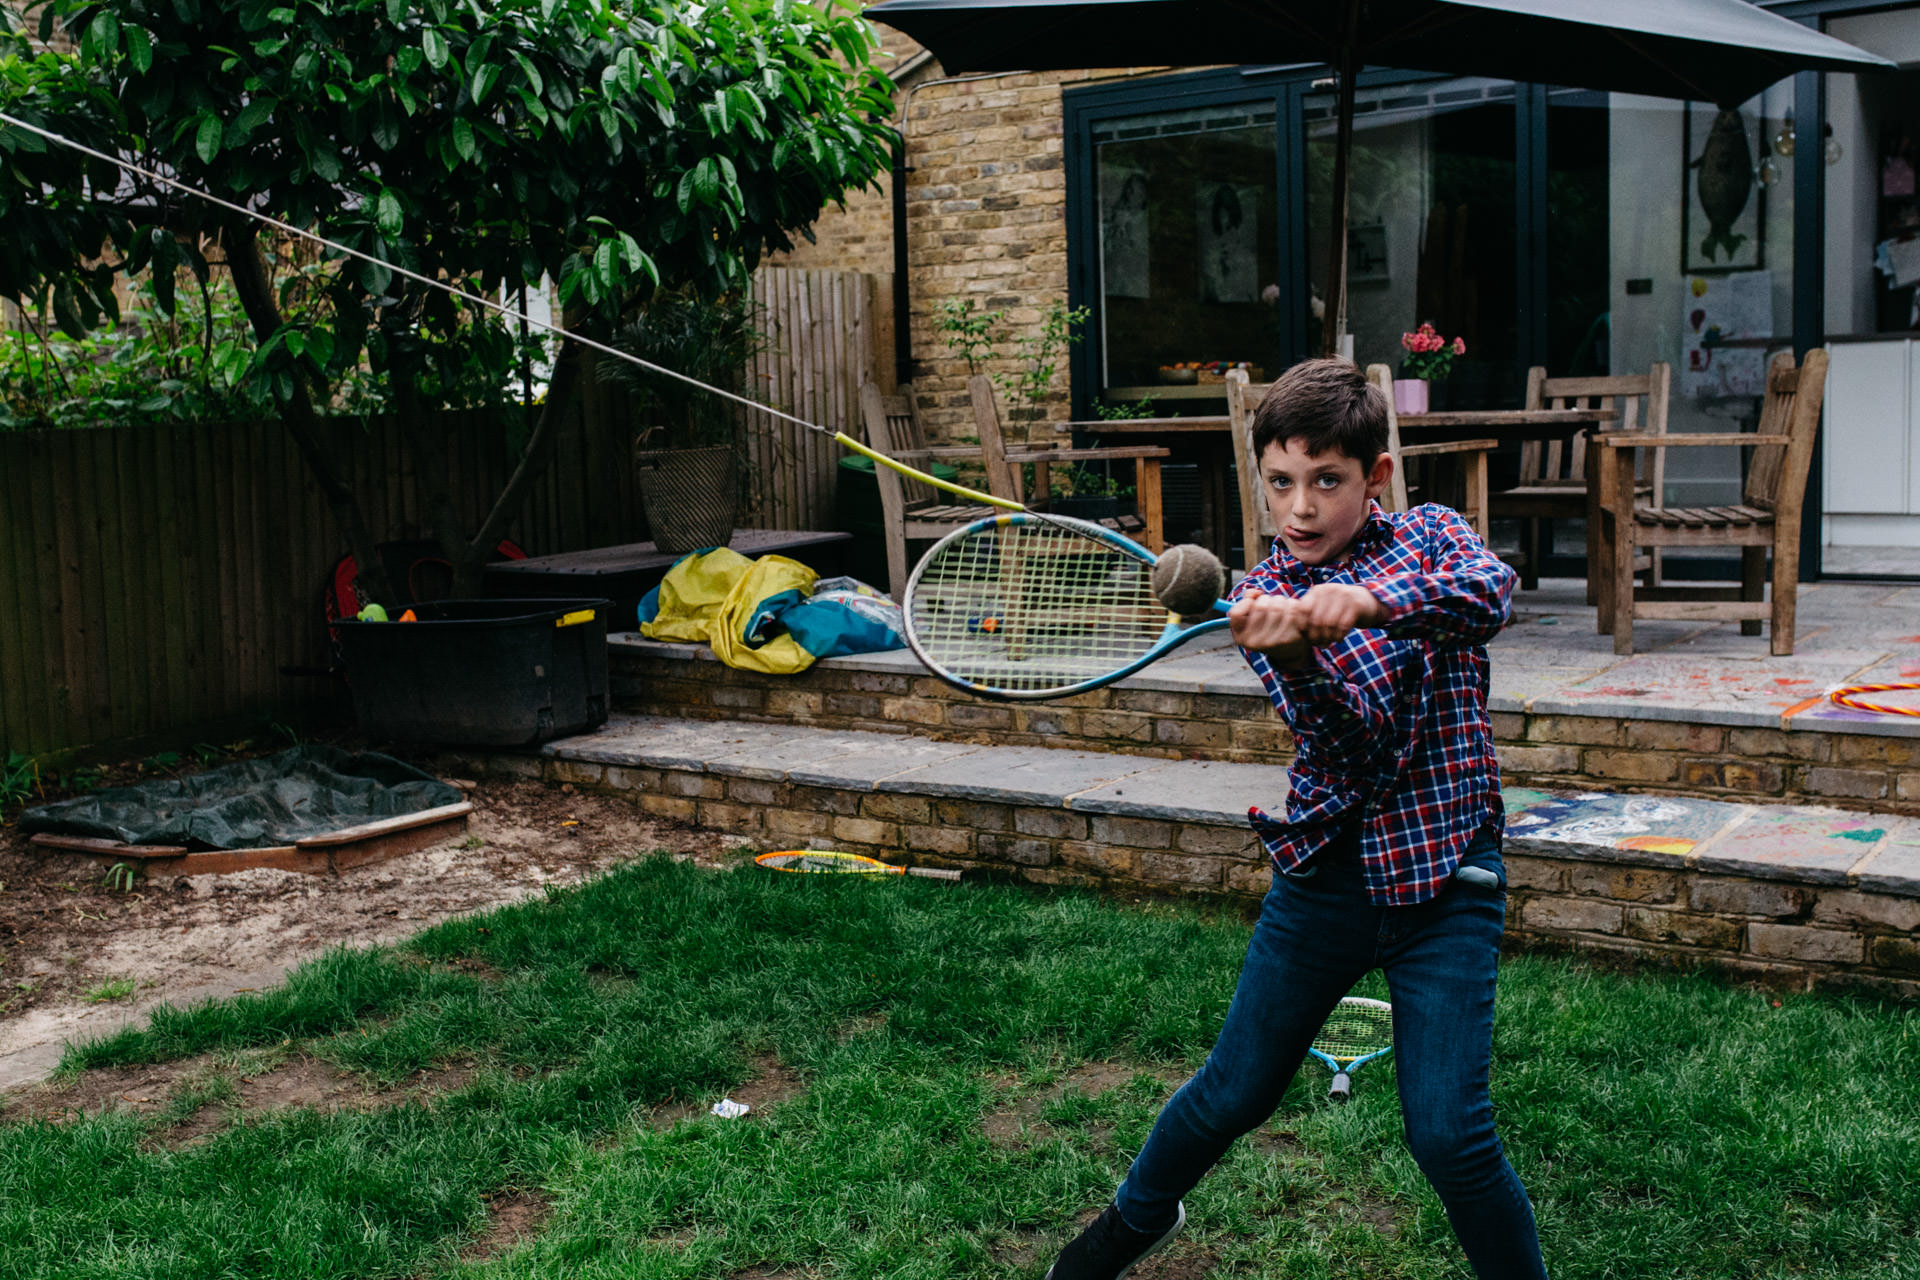 London family photographer | Photoshoot with children playing tennis